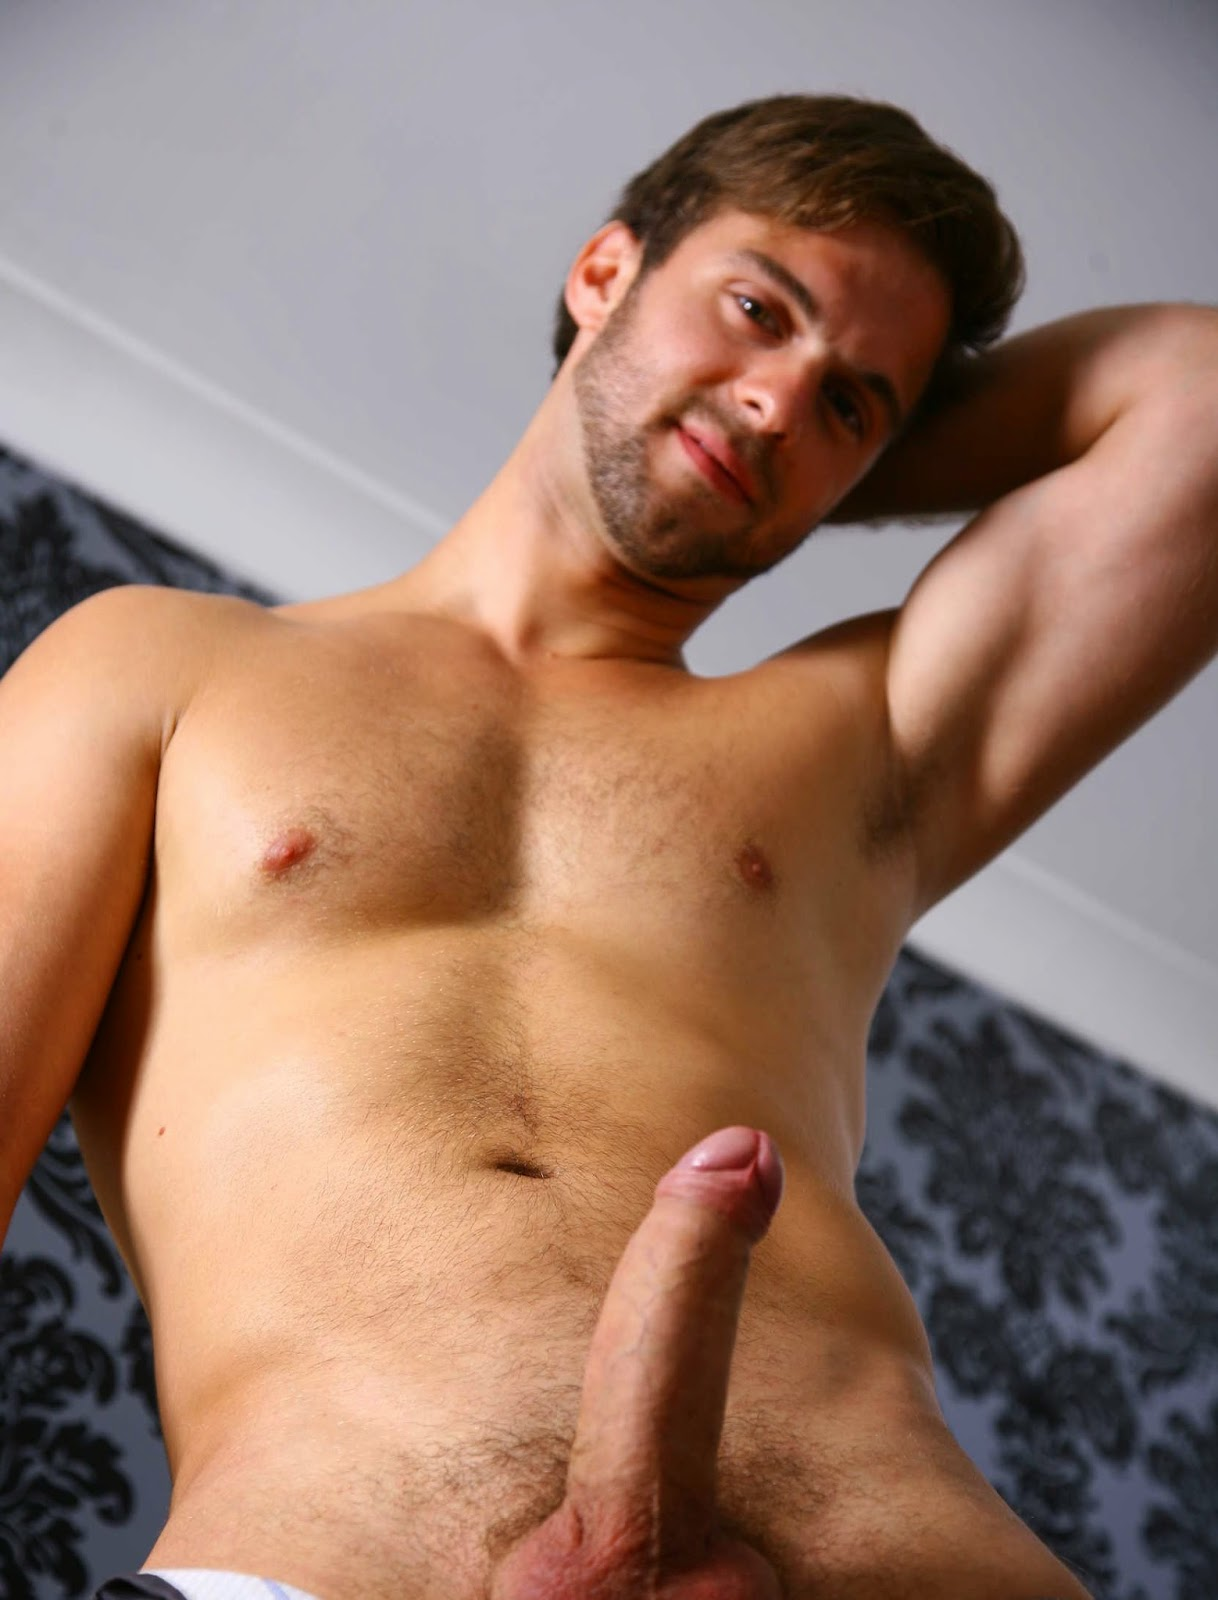 gay bukkakeboy sitios de escorts